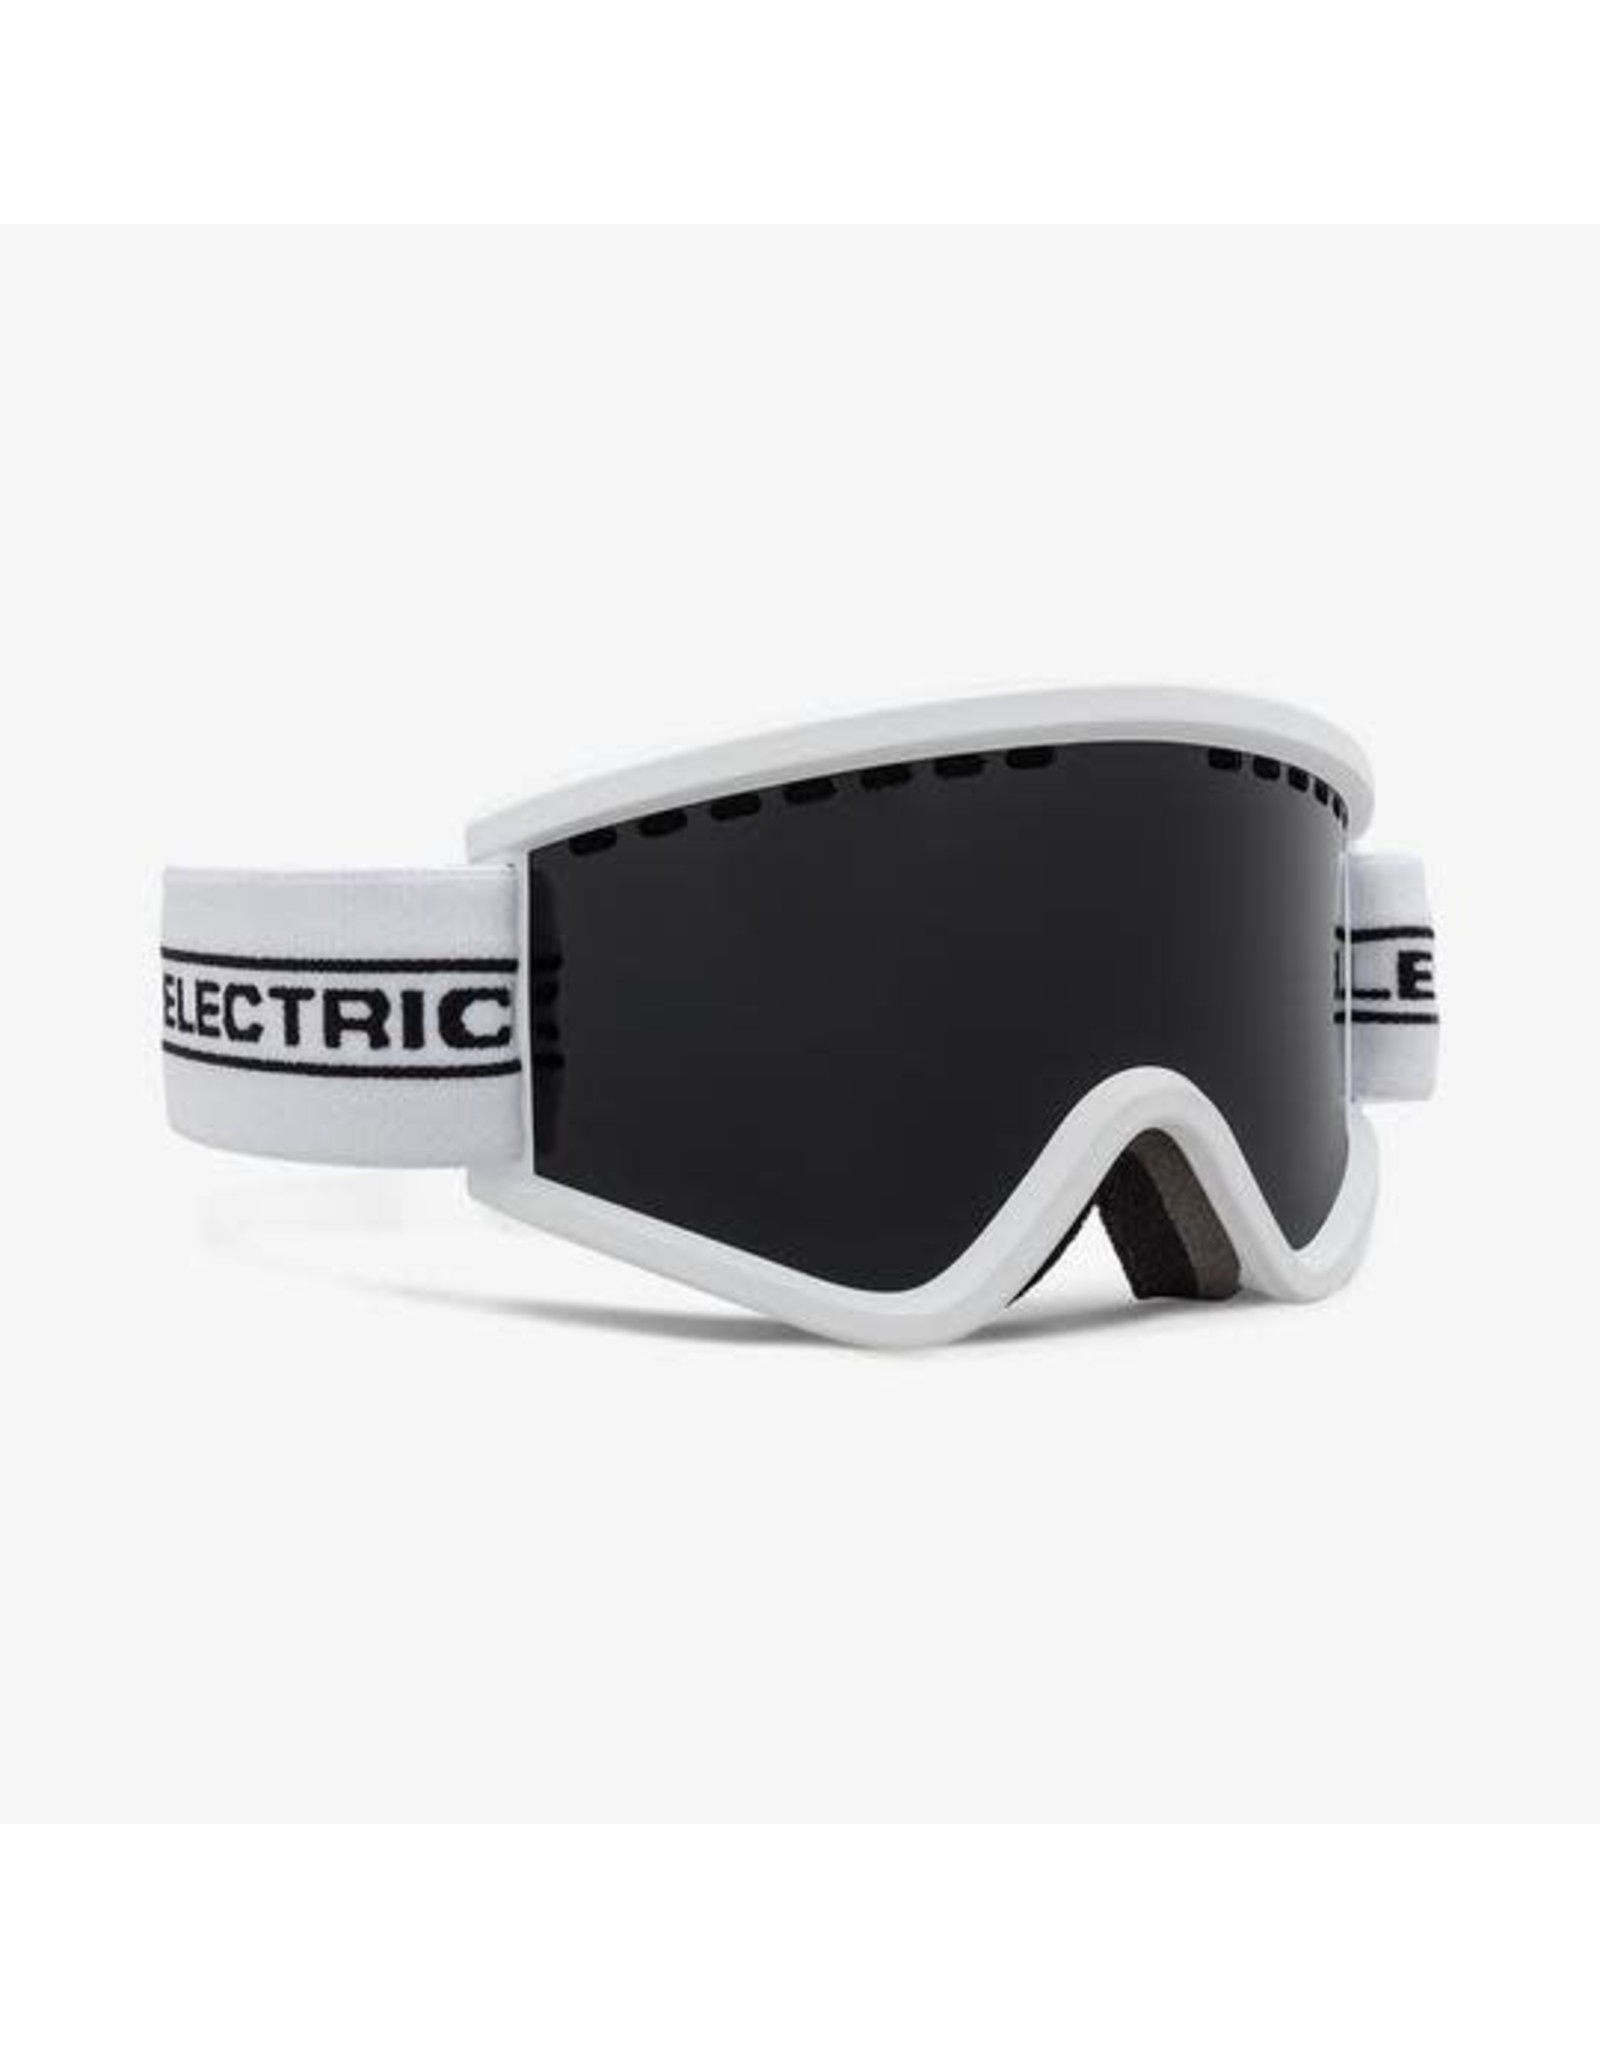 electric Electric - Lunette snowboard junior egv.k white tape lens jet black